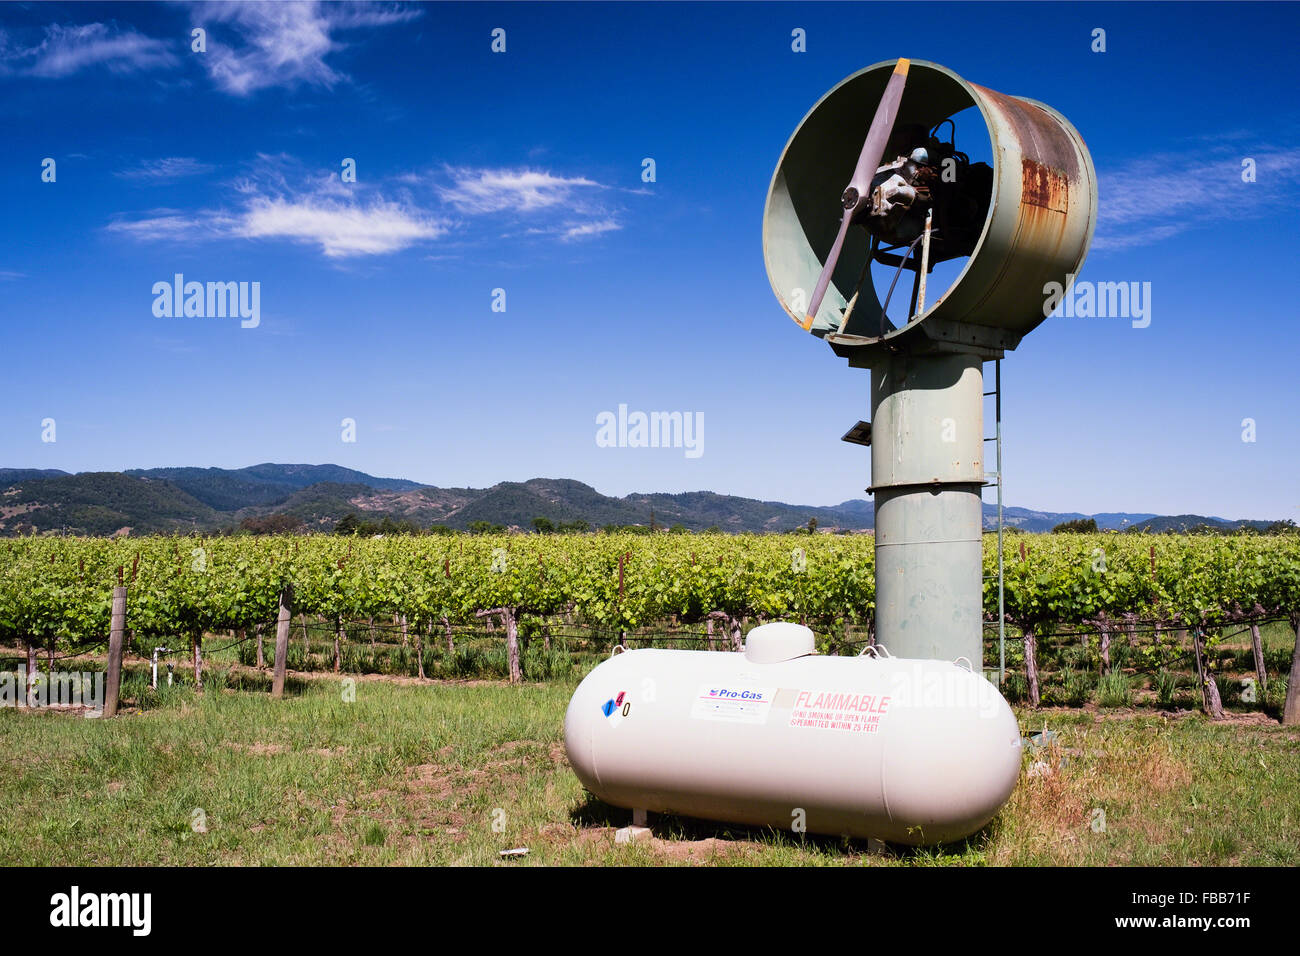 low-angle-view-of-a-wind-machine-in-a-vi